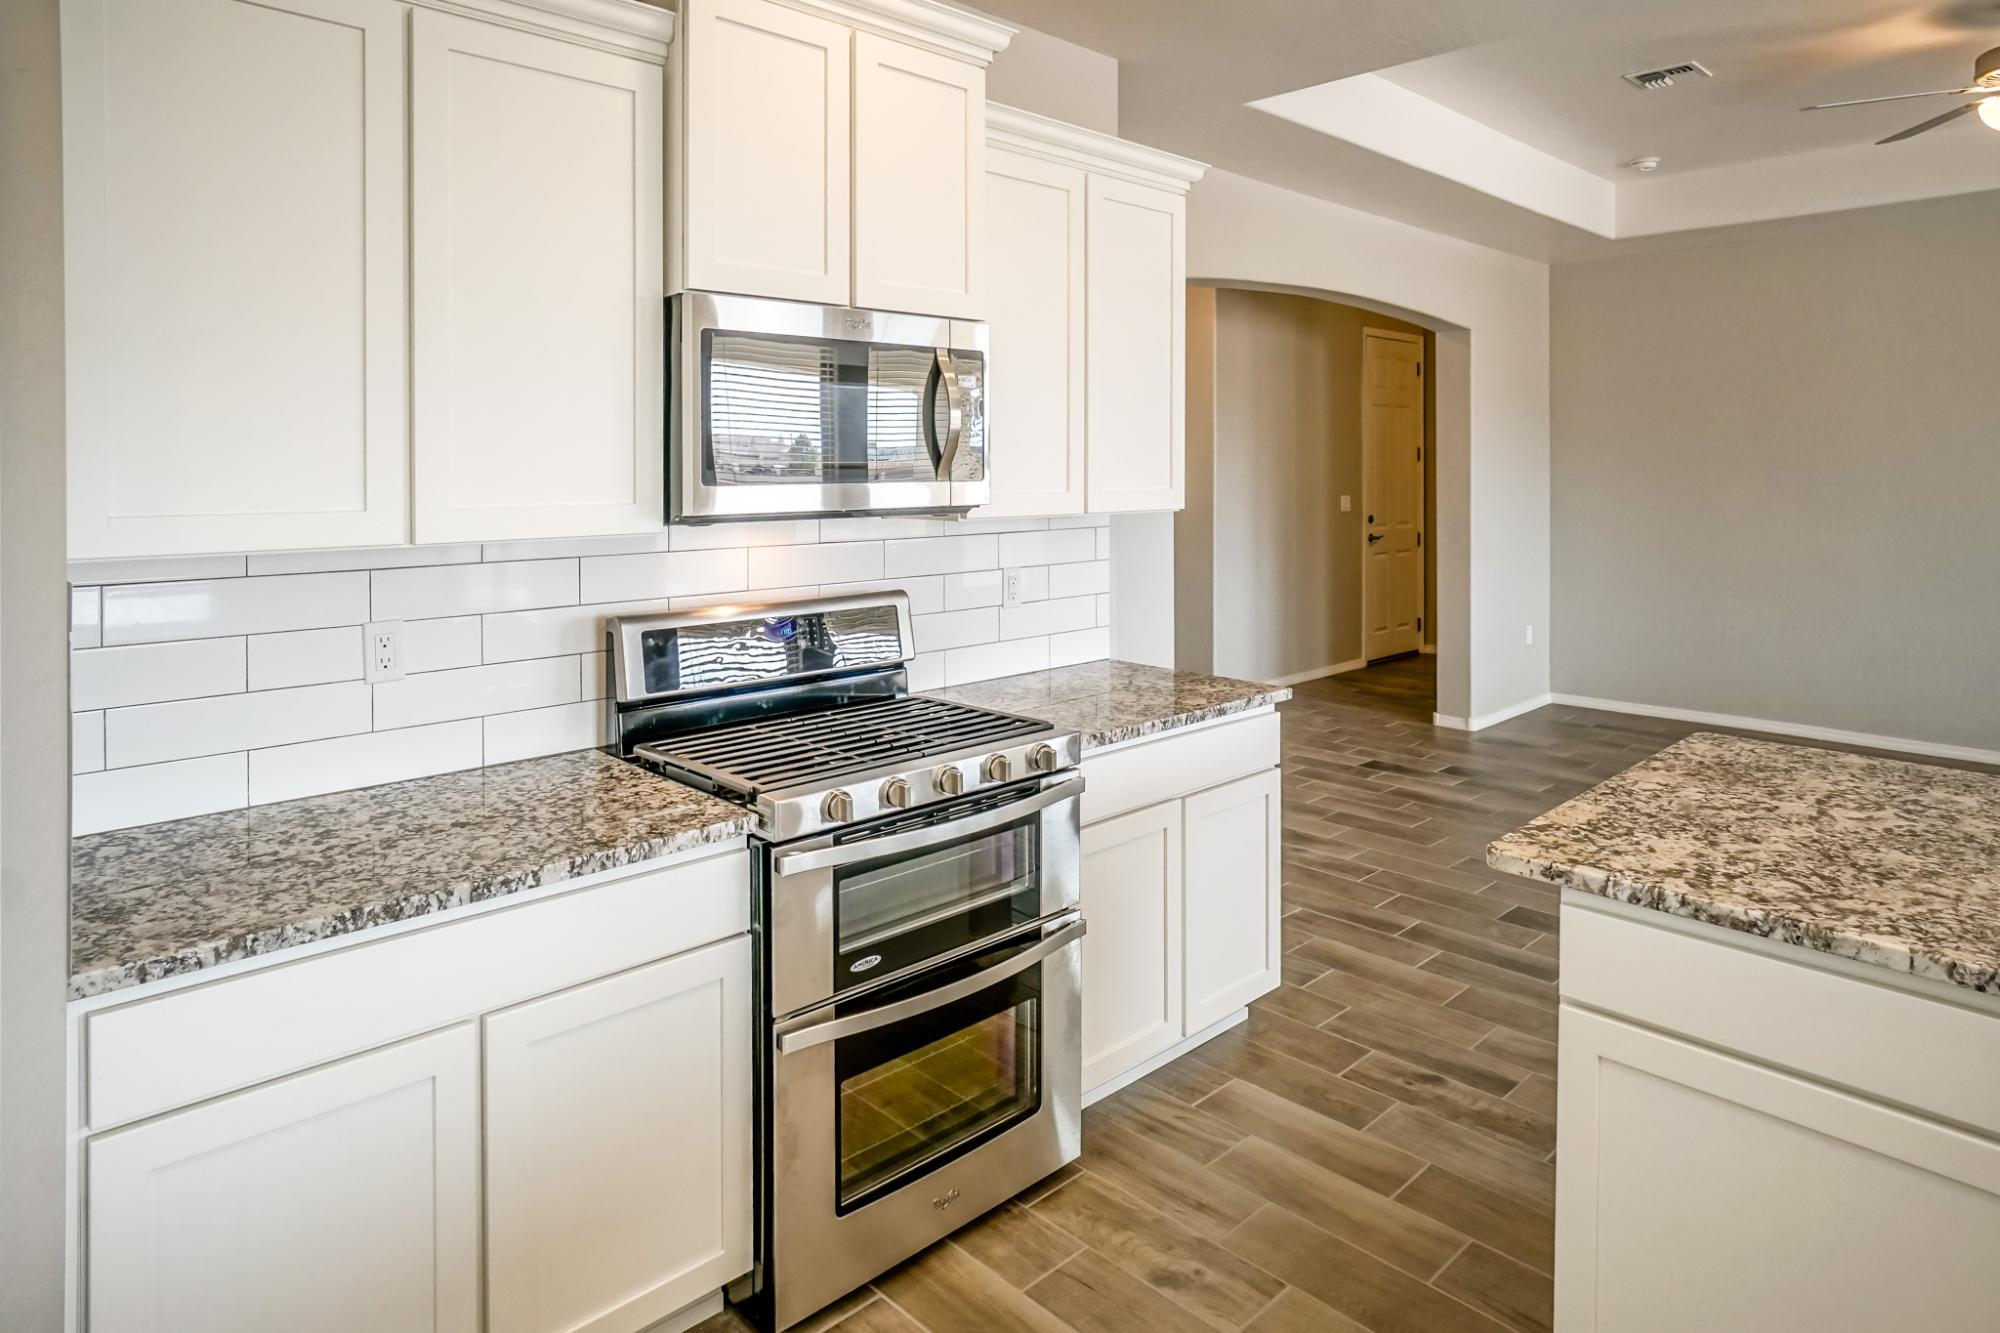 Kitchen featured in The Anne By Abrazo Homes in Albuquerque, NM